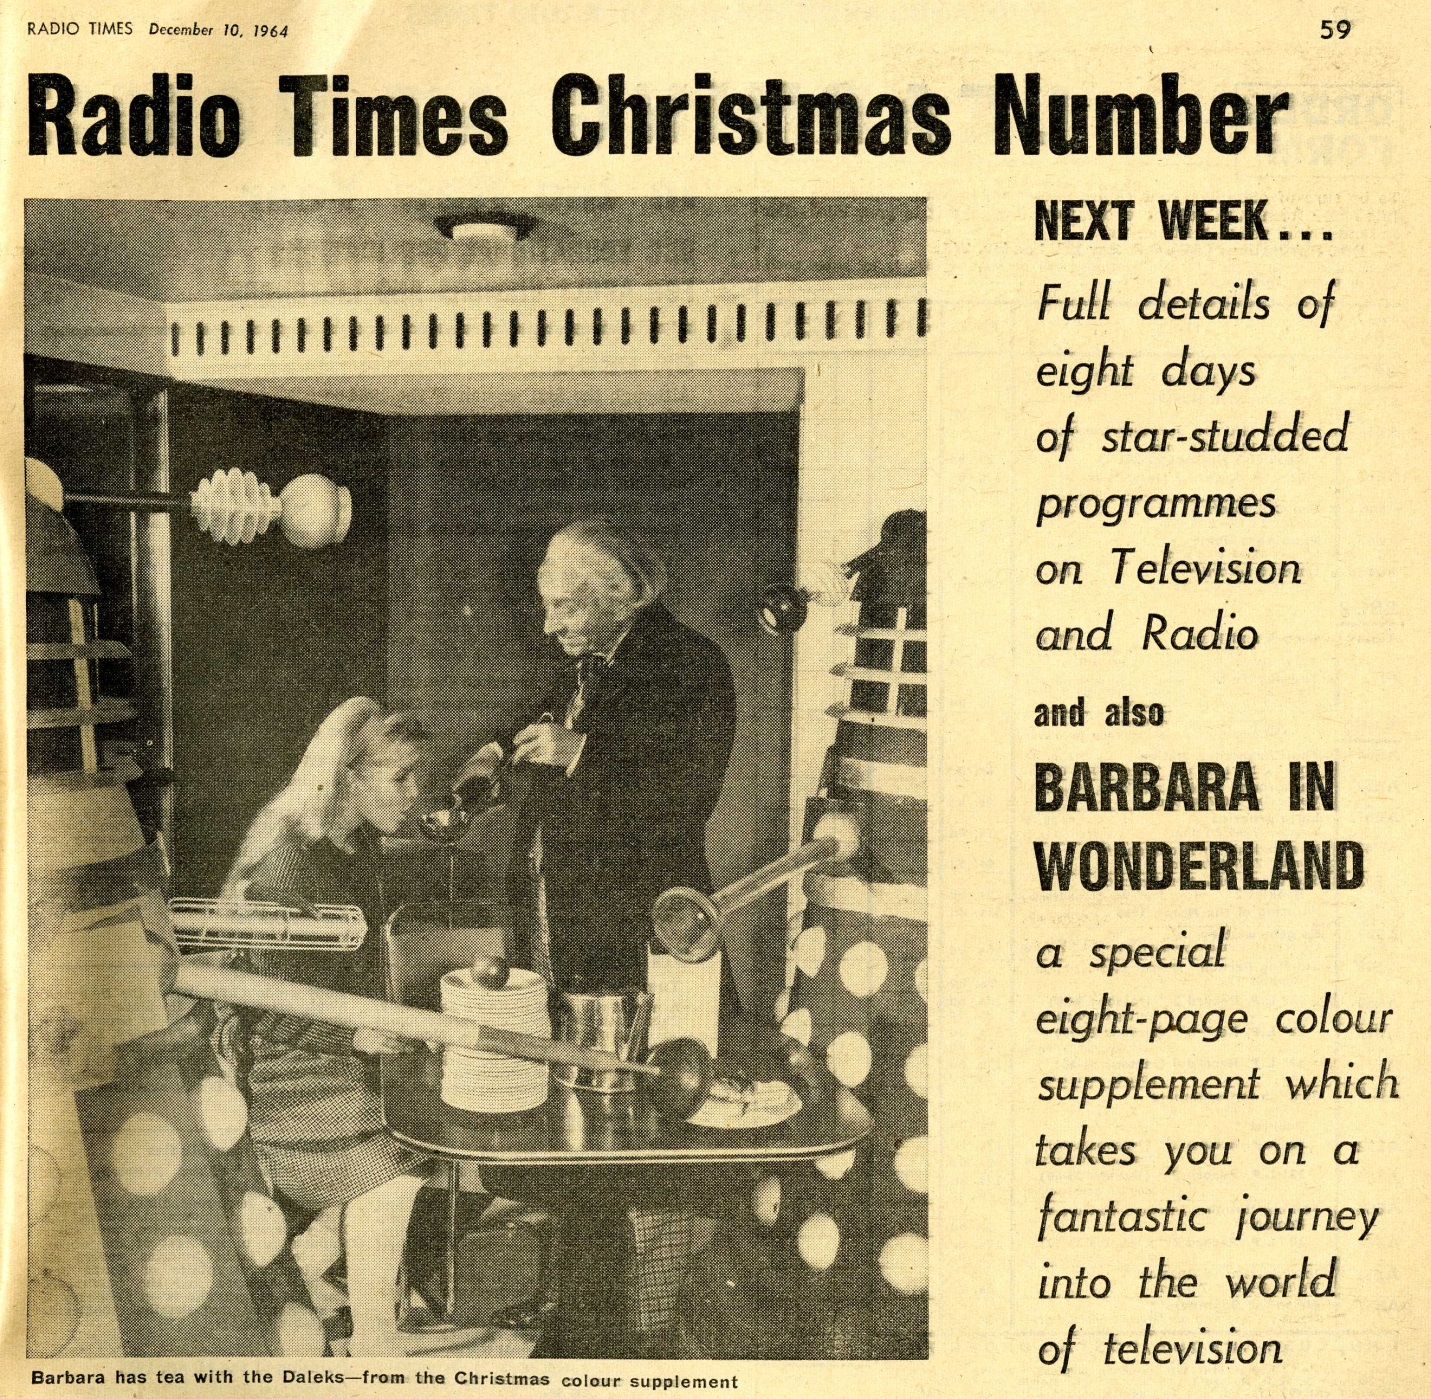 Radio Times. Preview for the Christmas Radio Times, 12-18 December 1964